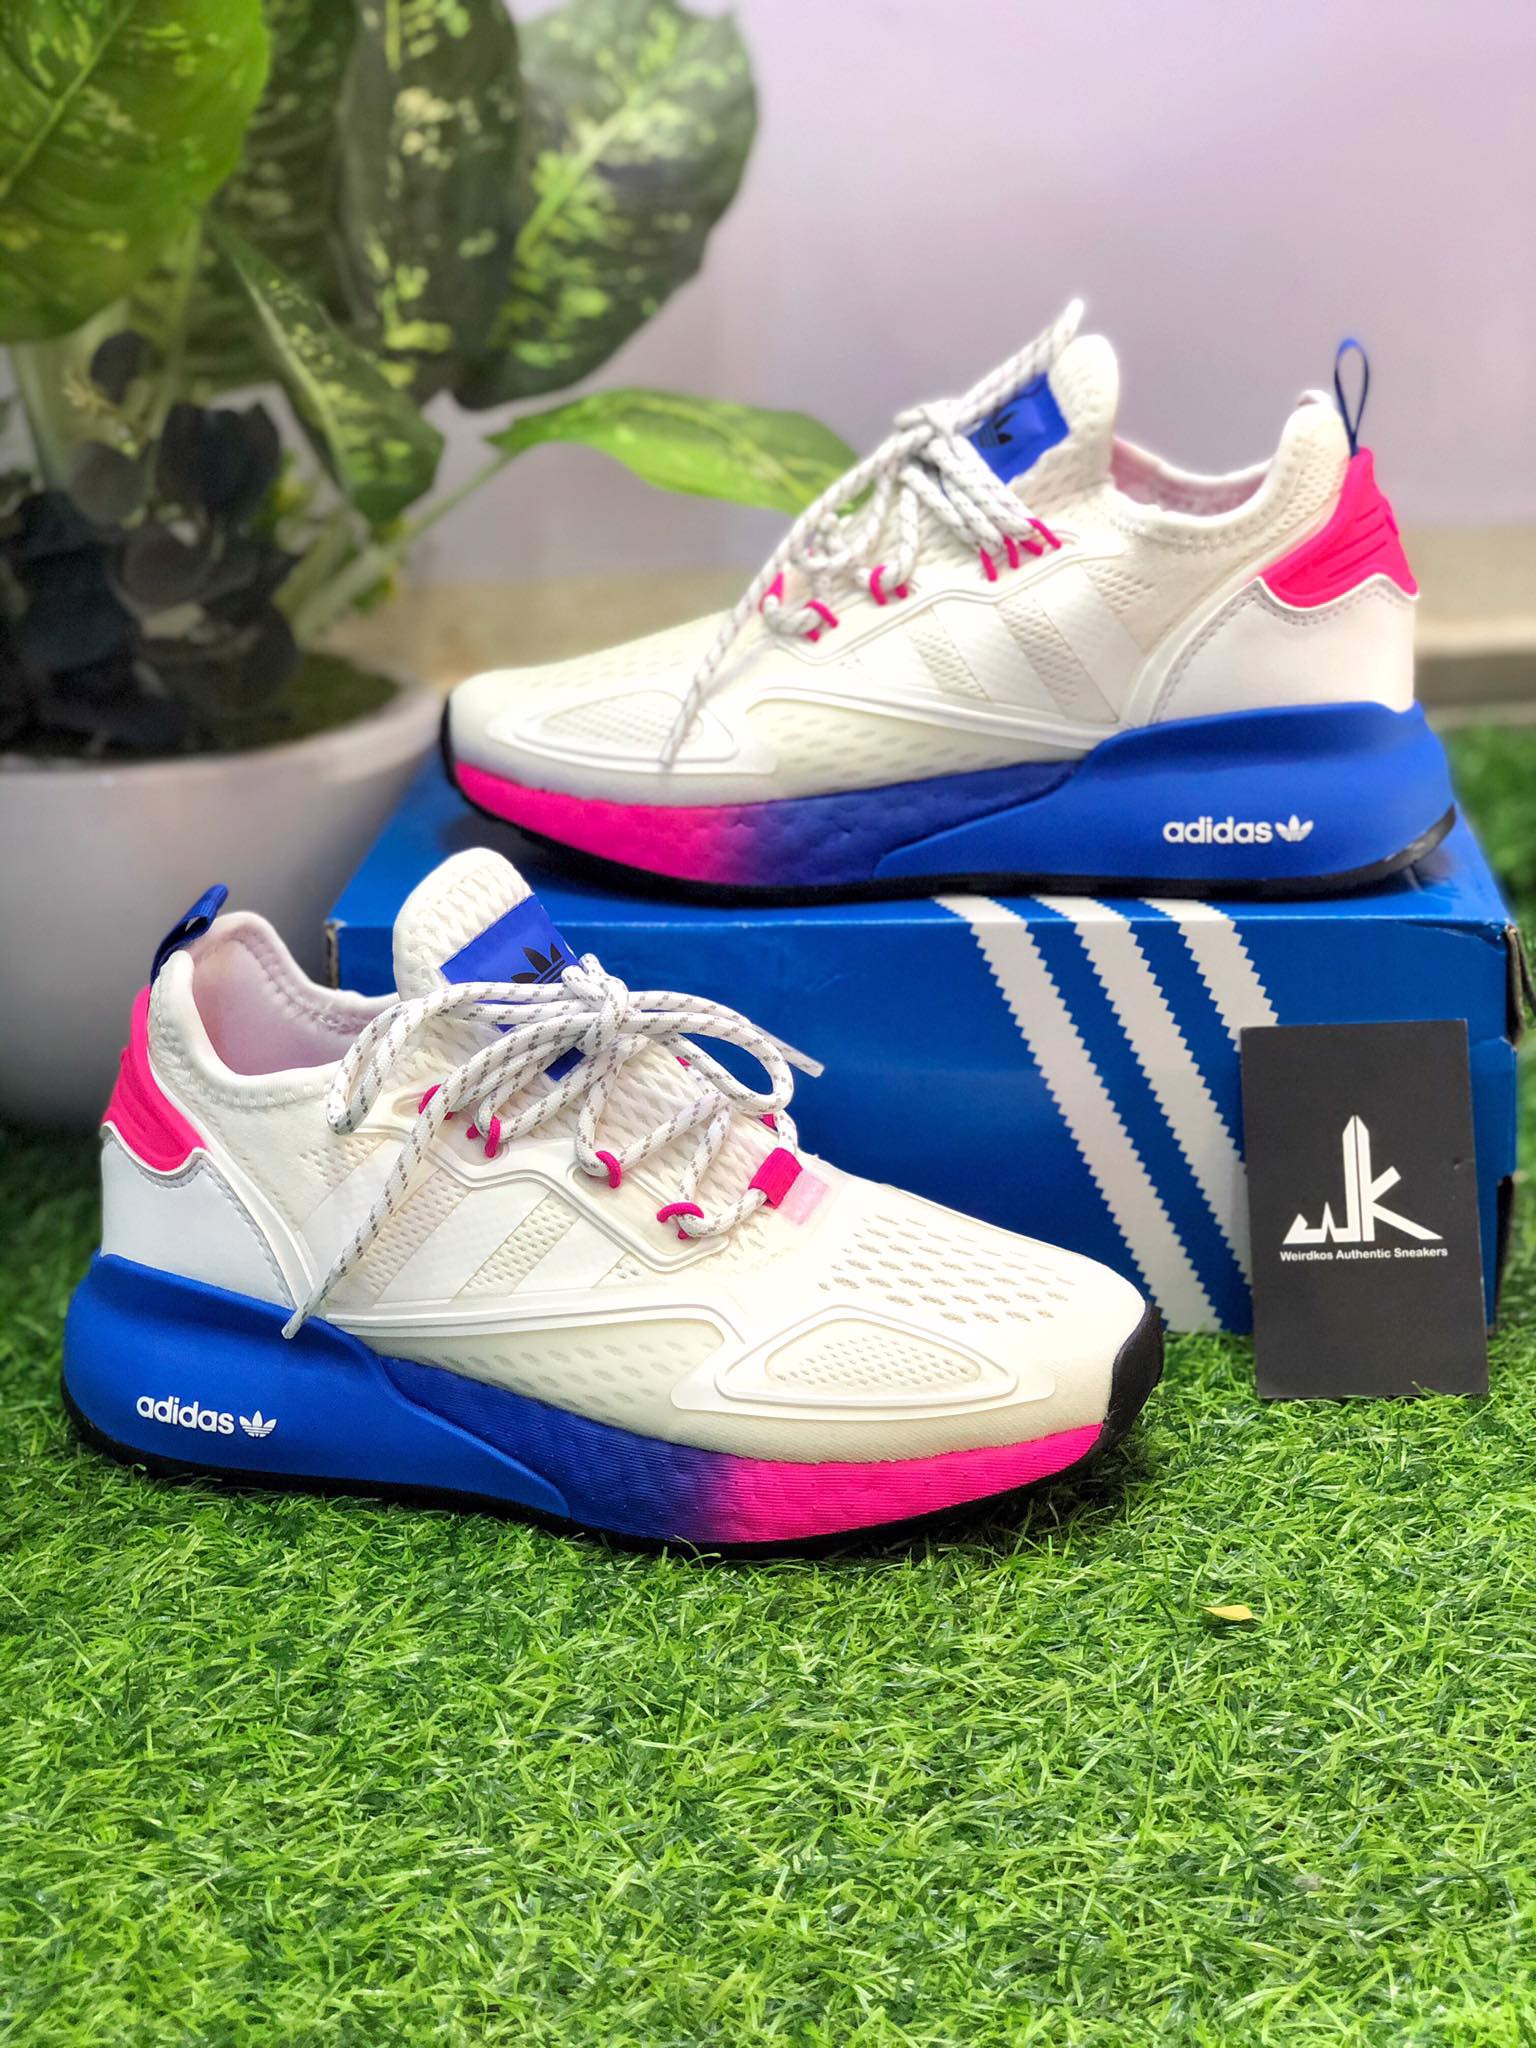 FY0605 - ZX 2K Boost White Pink Blue